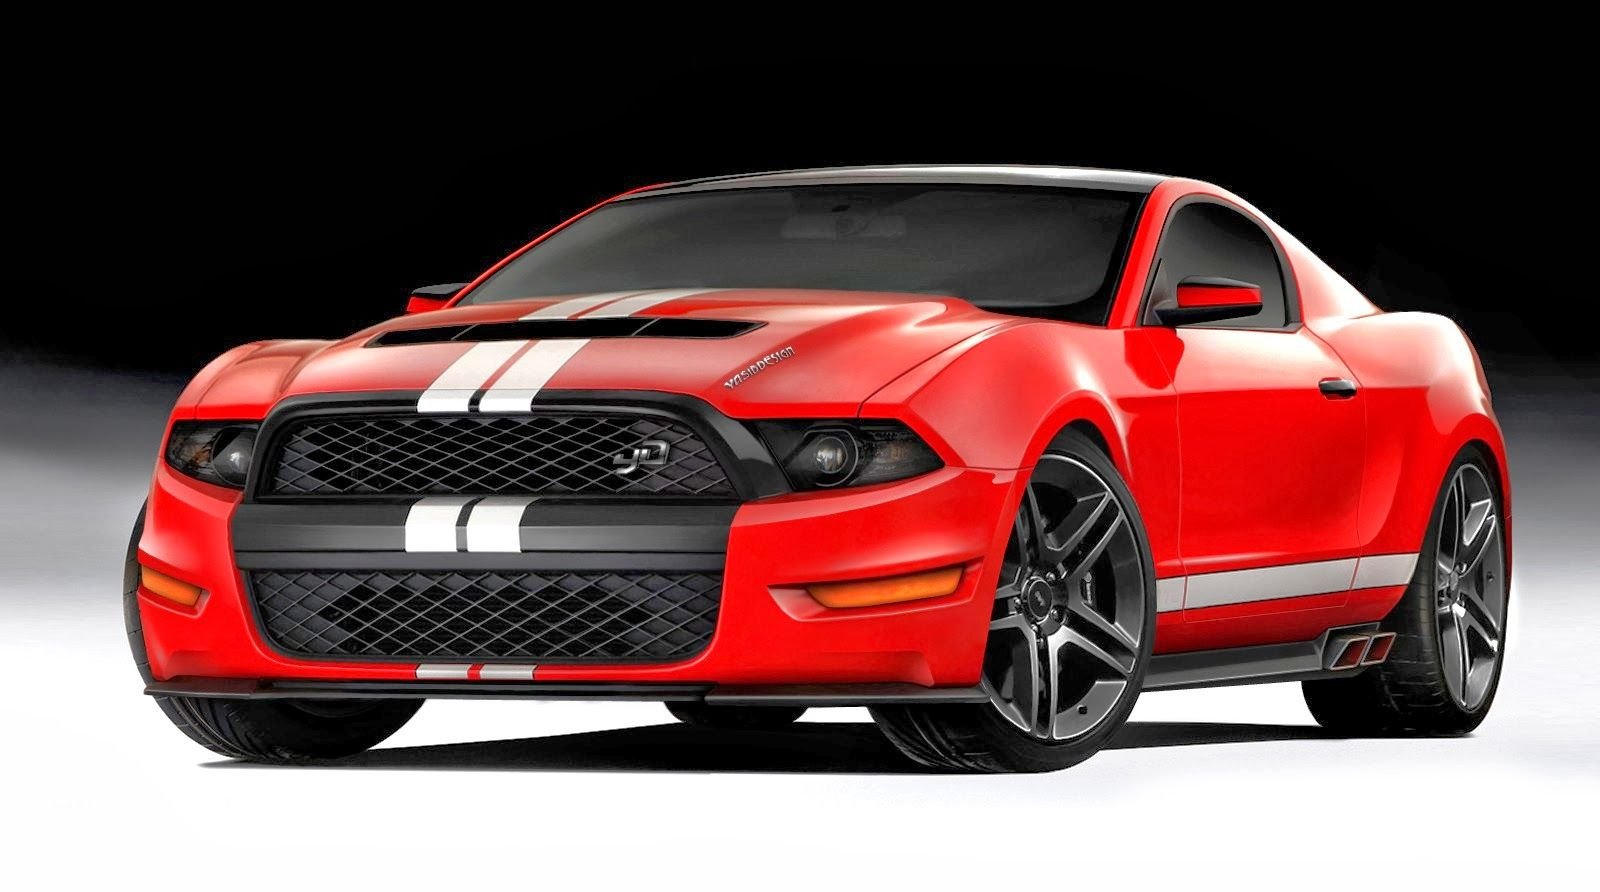 2015 Ford Mustang Shelby  Bing Images  Ford  Pinterest  Posts